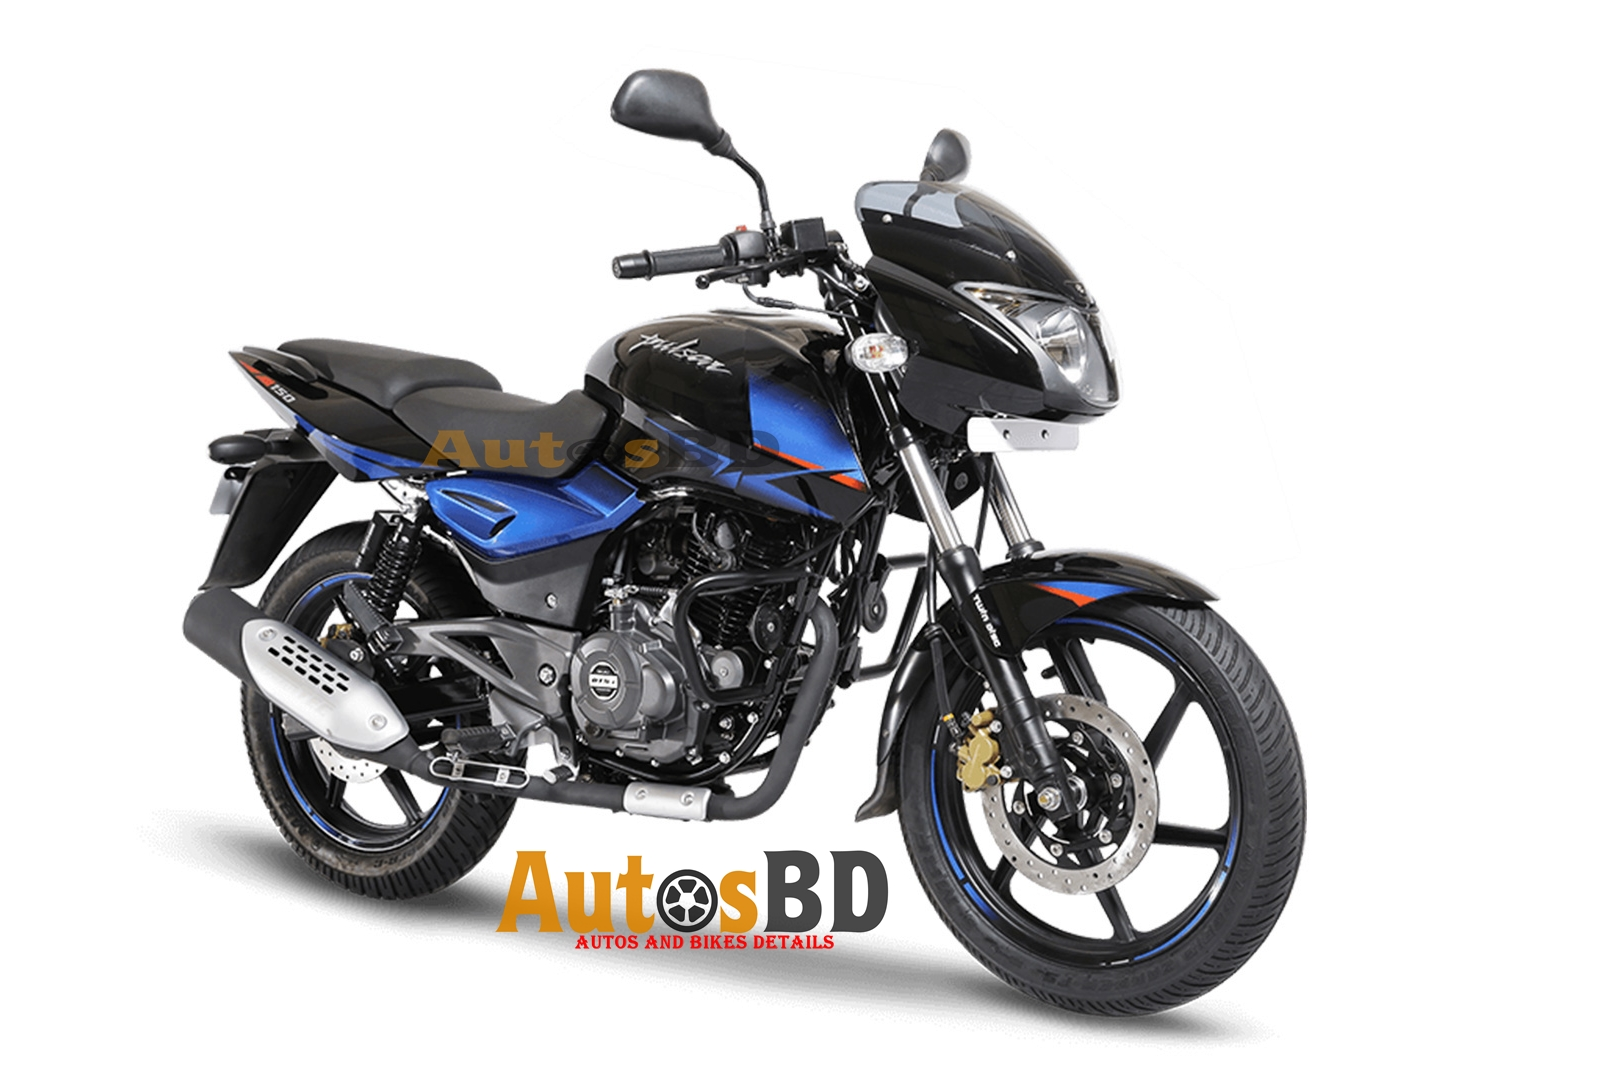 Bajaj Pulsar 150 Twin Disc Motorcycle Specification